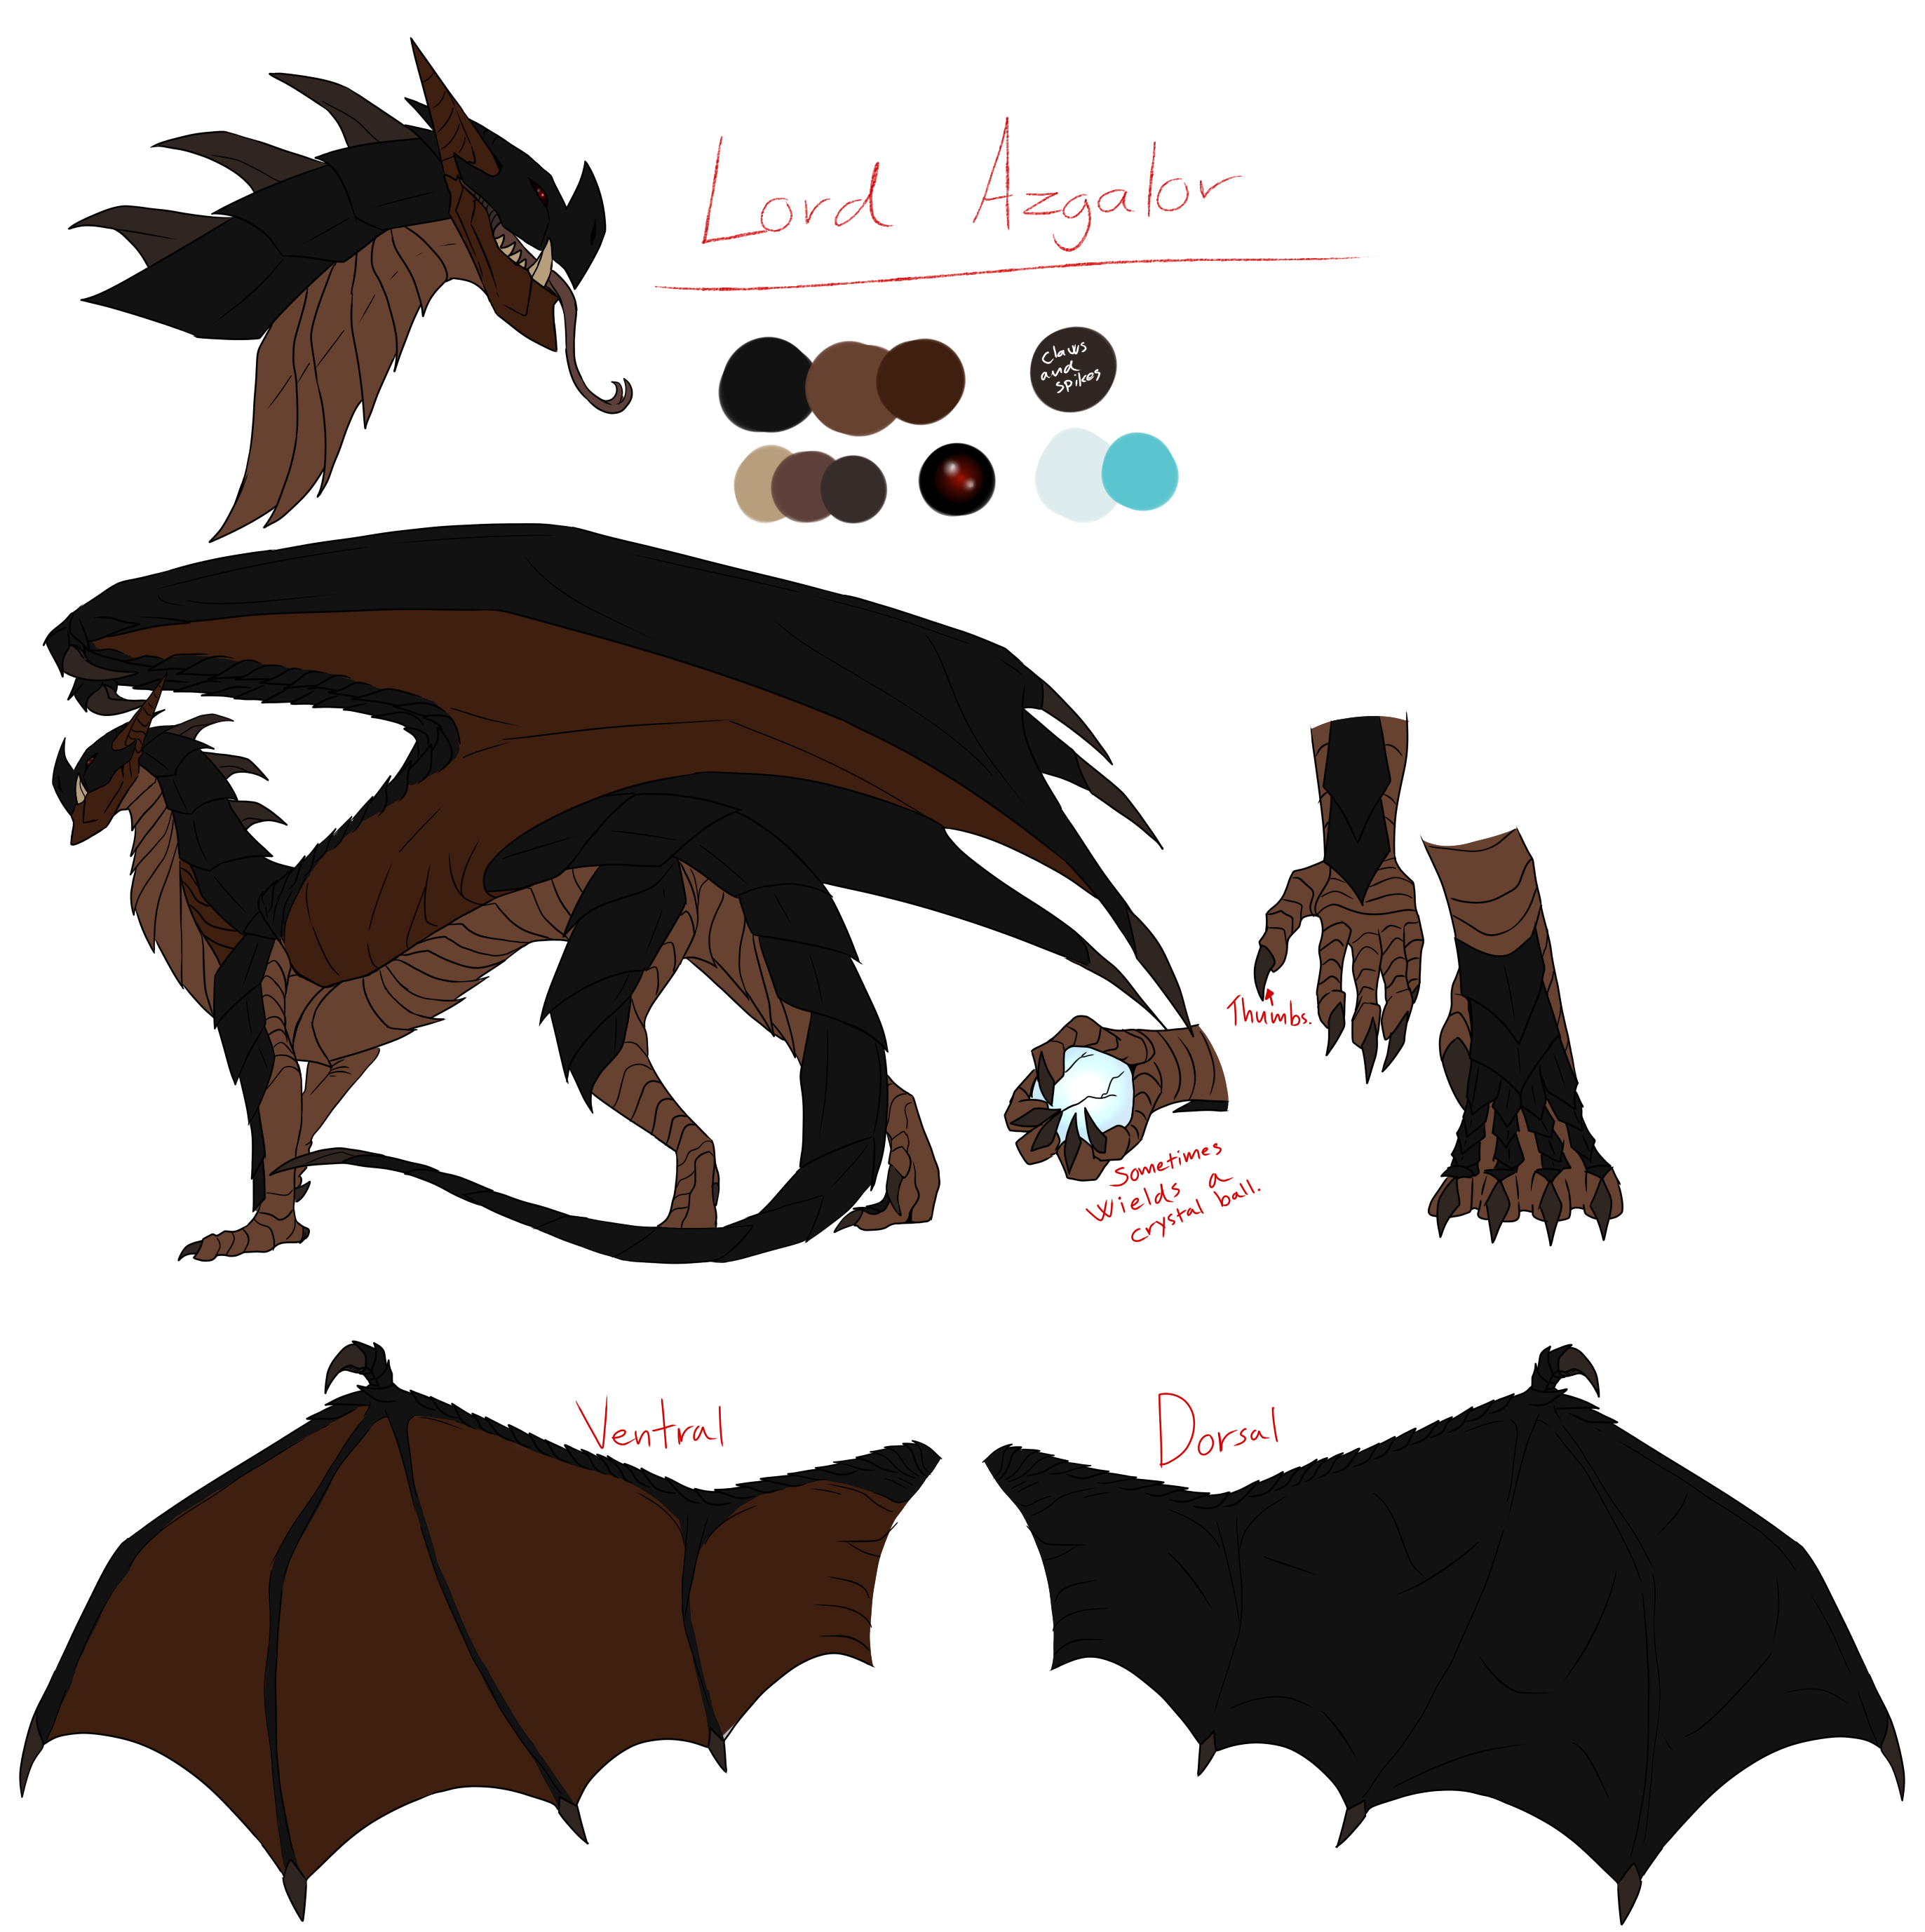 Lord Azgalor by CXCR